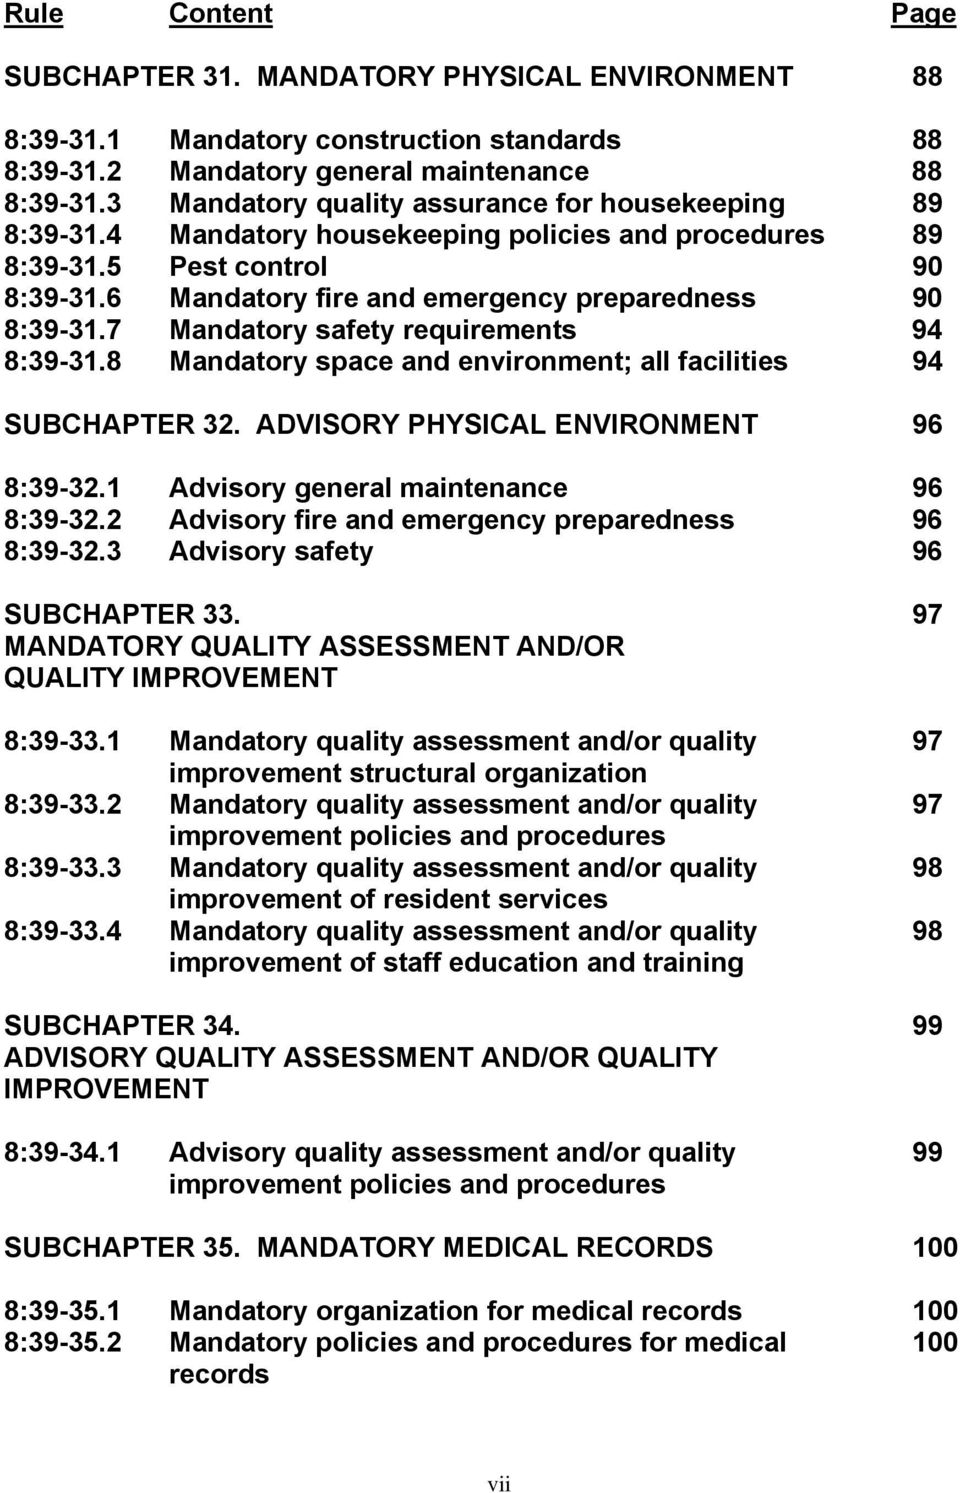 7 Mandatory safety requirements 94 8:39-31.8 Mandatory space and environment; all facilities 94 SUBCHAPTER 32. ADVISORY PHYSICAL ENVIRONMENT 96 8:39-32.1 Advisory general maintenance 96 8:39-32.